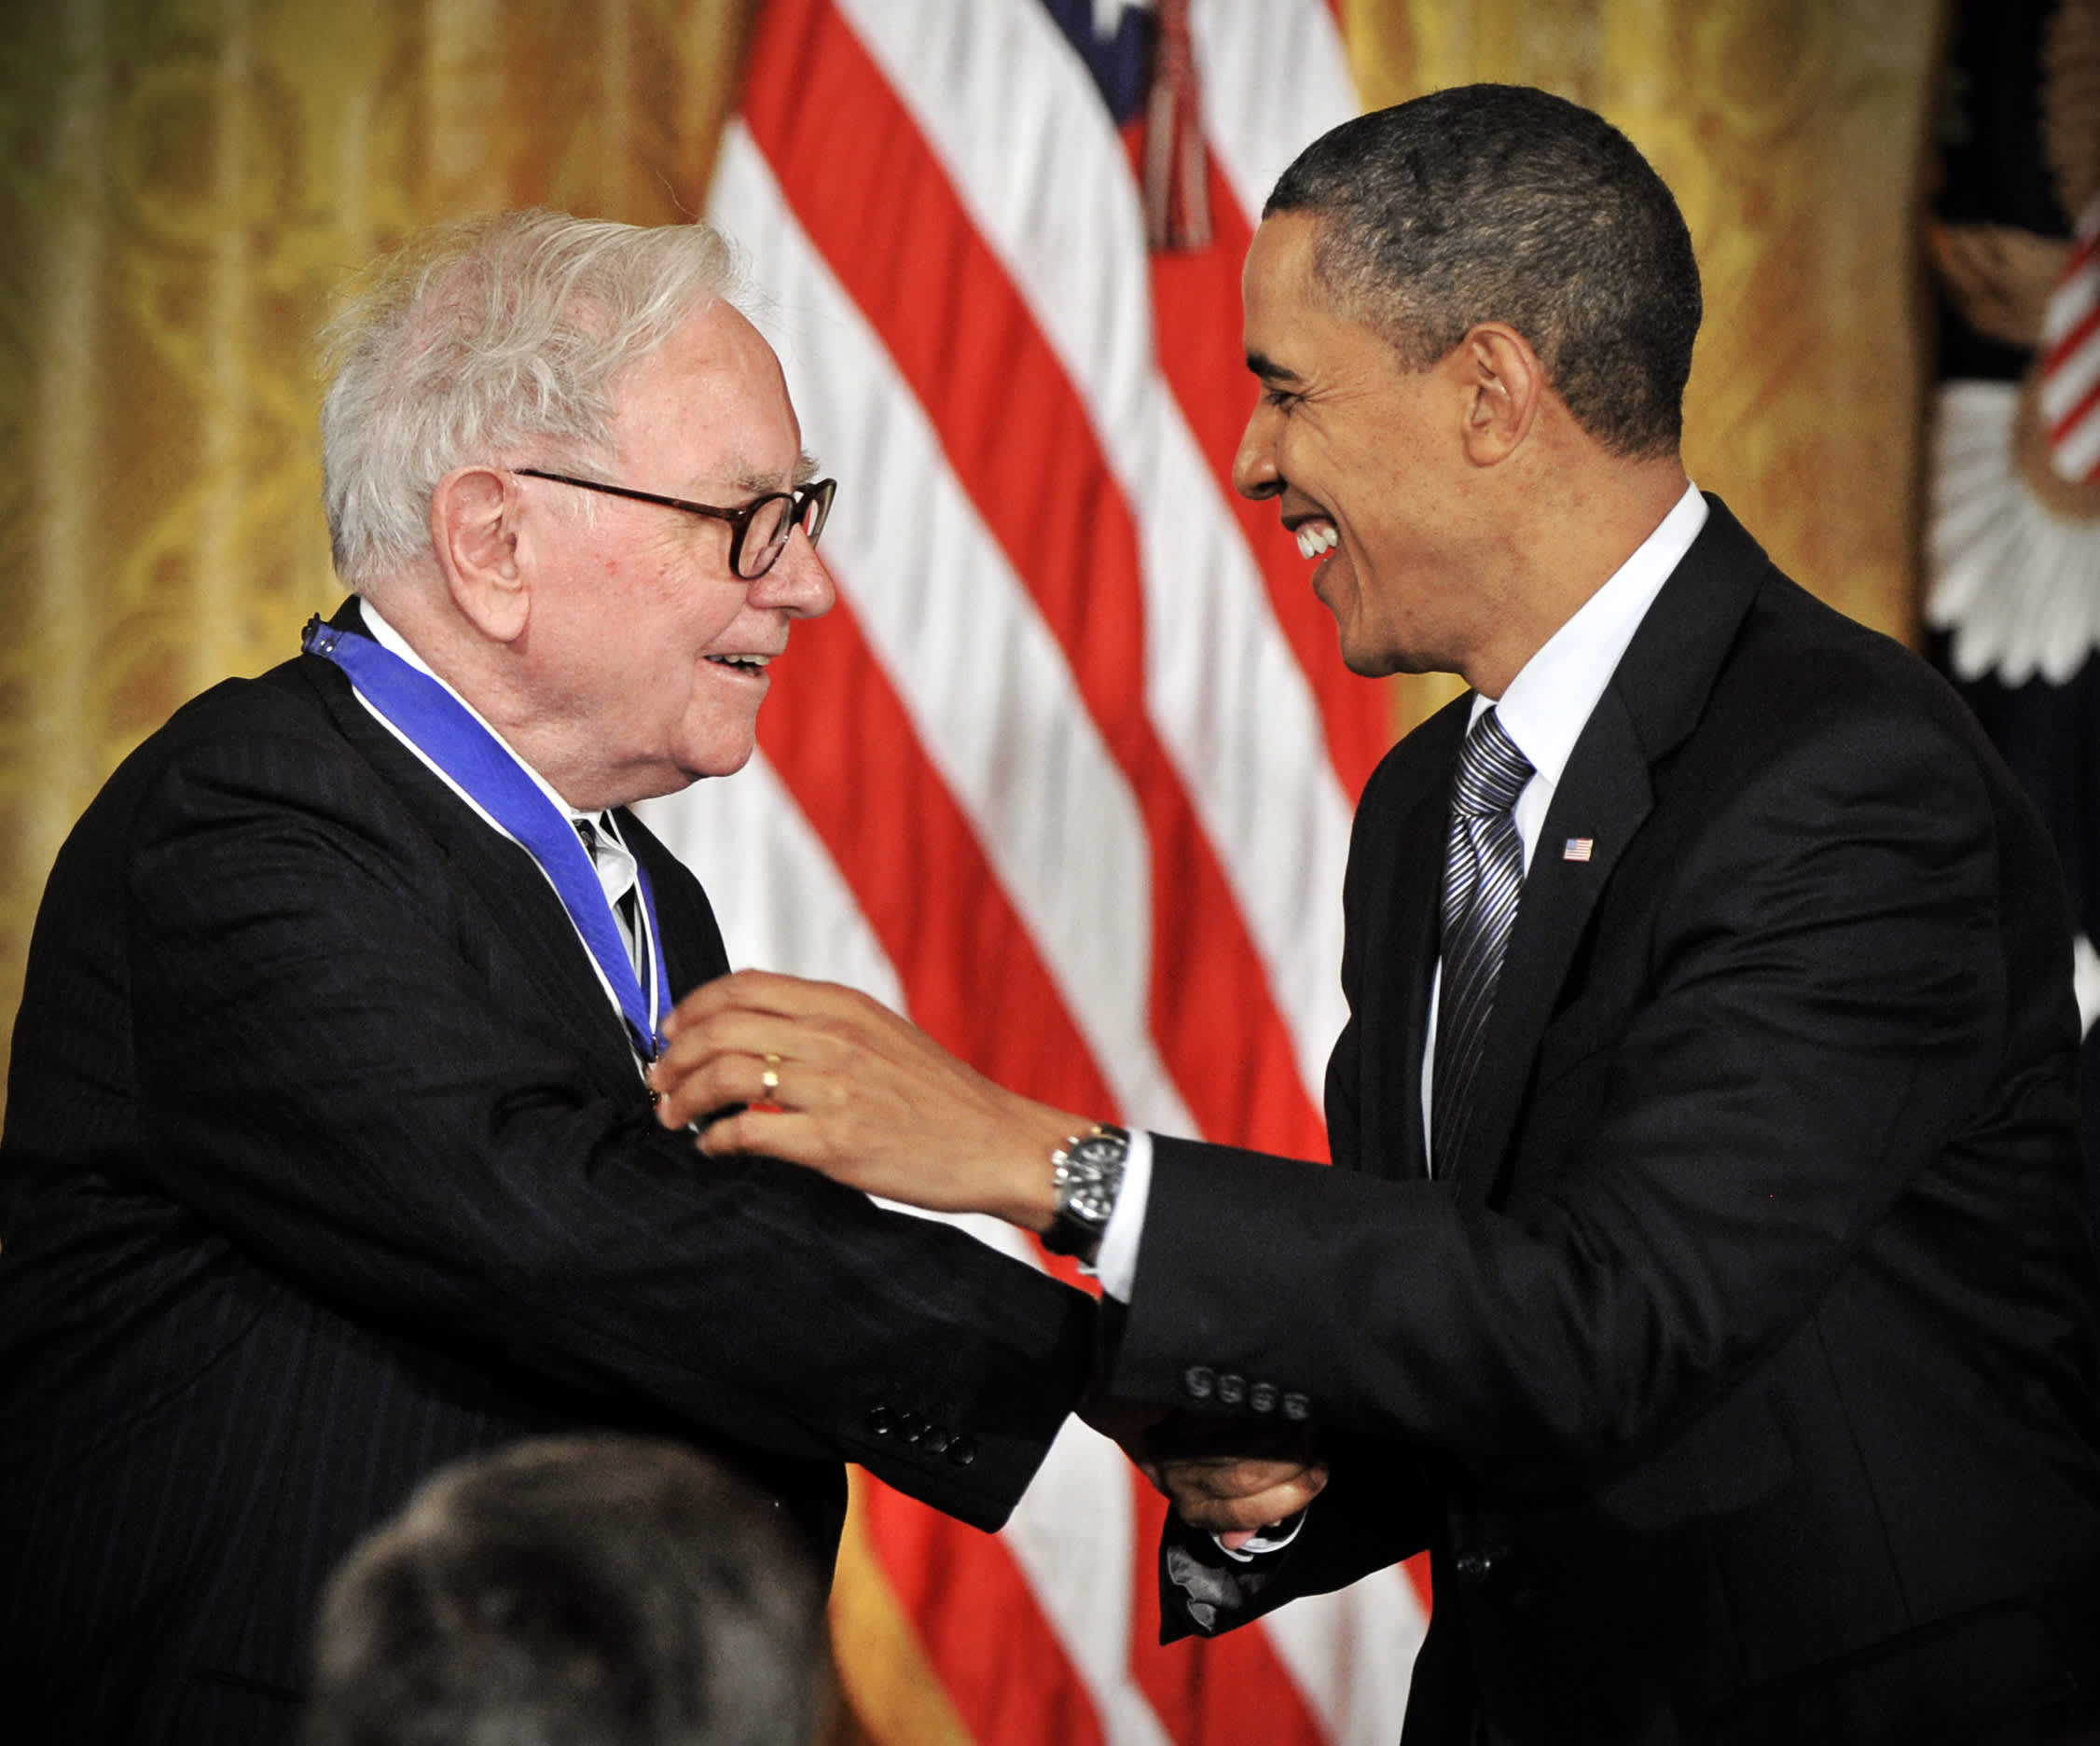 Warren Buffett and Barack Obama both recommend this book, which Buffett calls 'sensational'